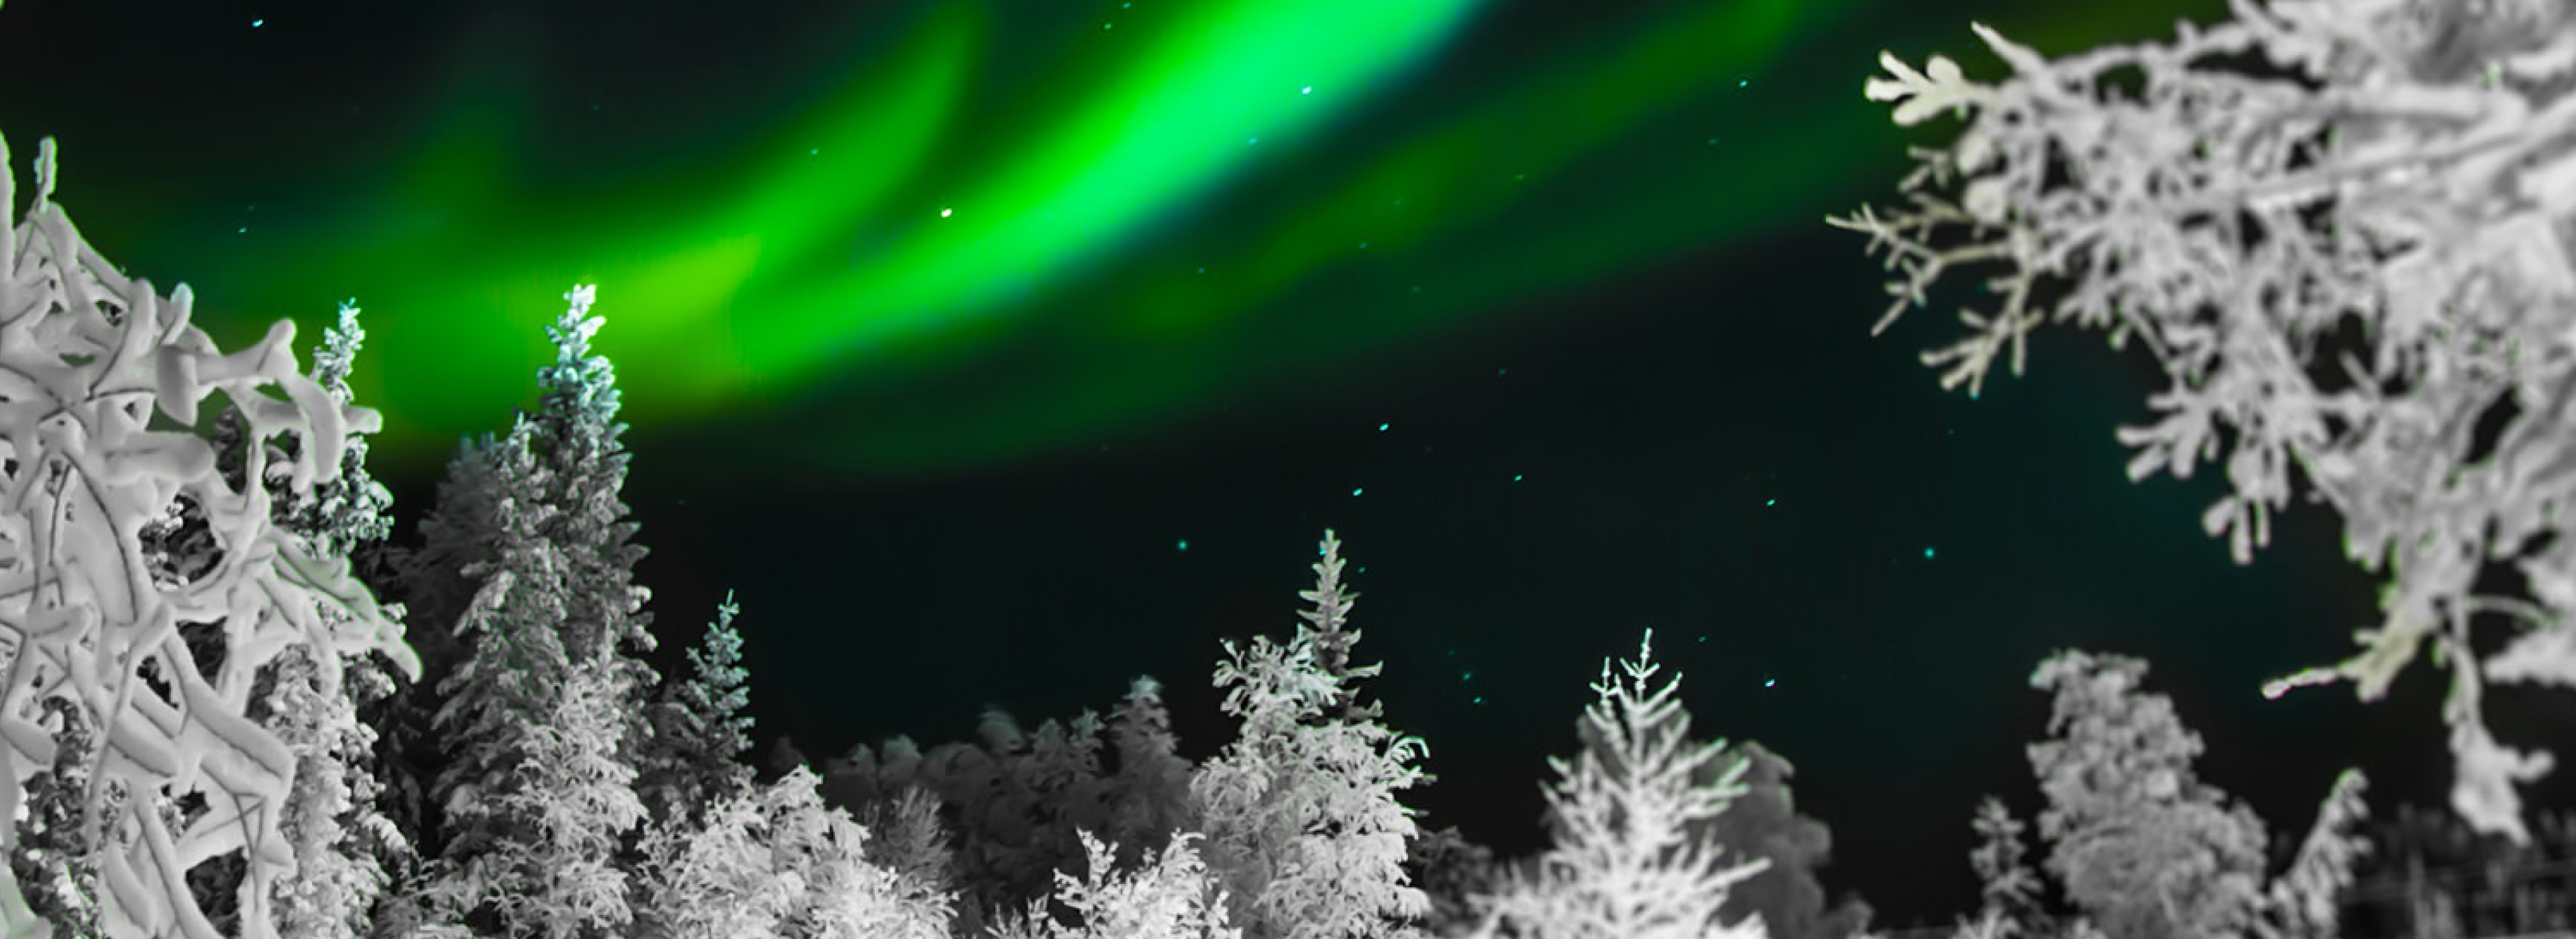 Enjoy some of the most amazing Northern Lights views in Scandinavia on your winter Finland tour